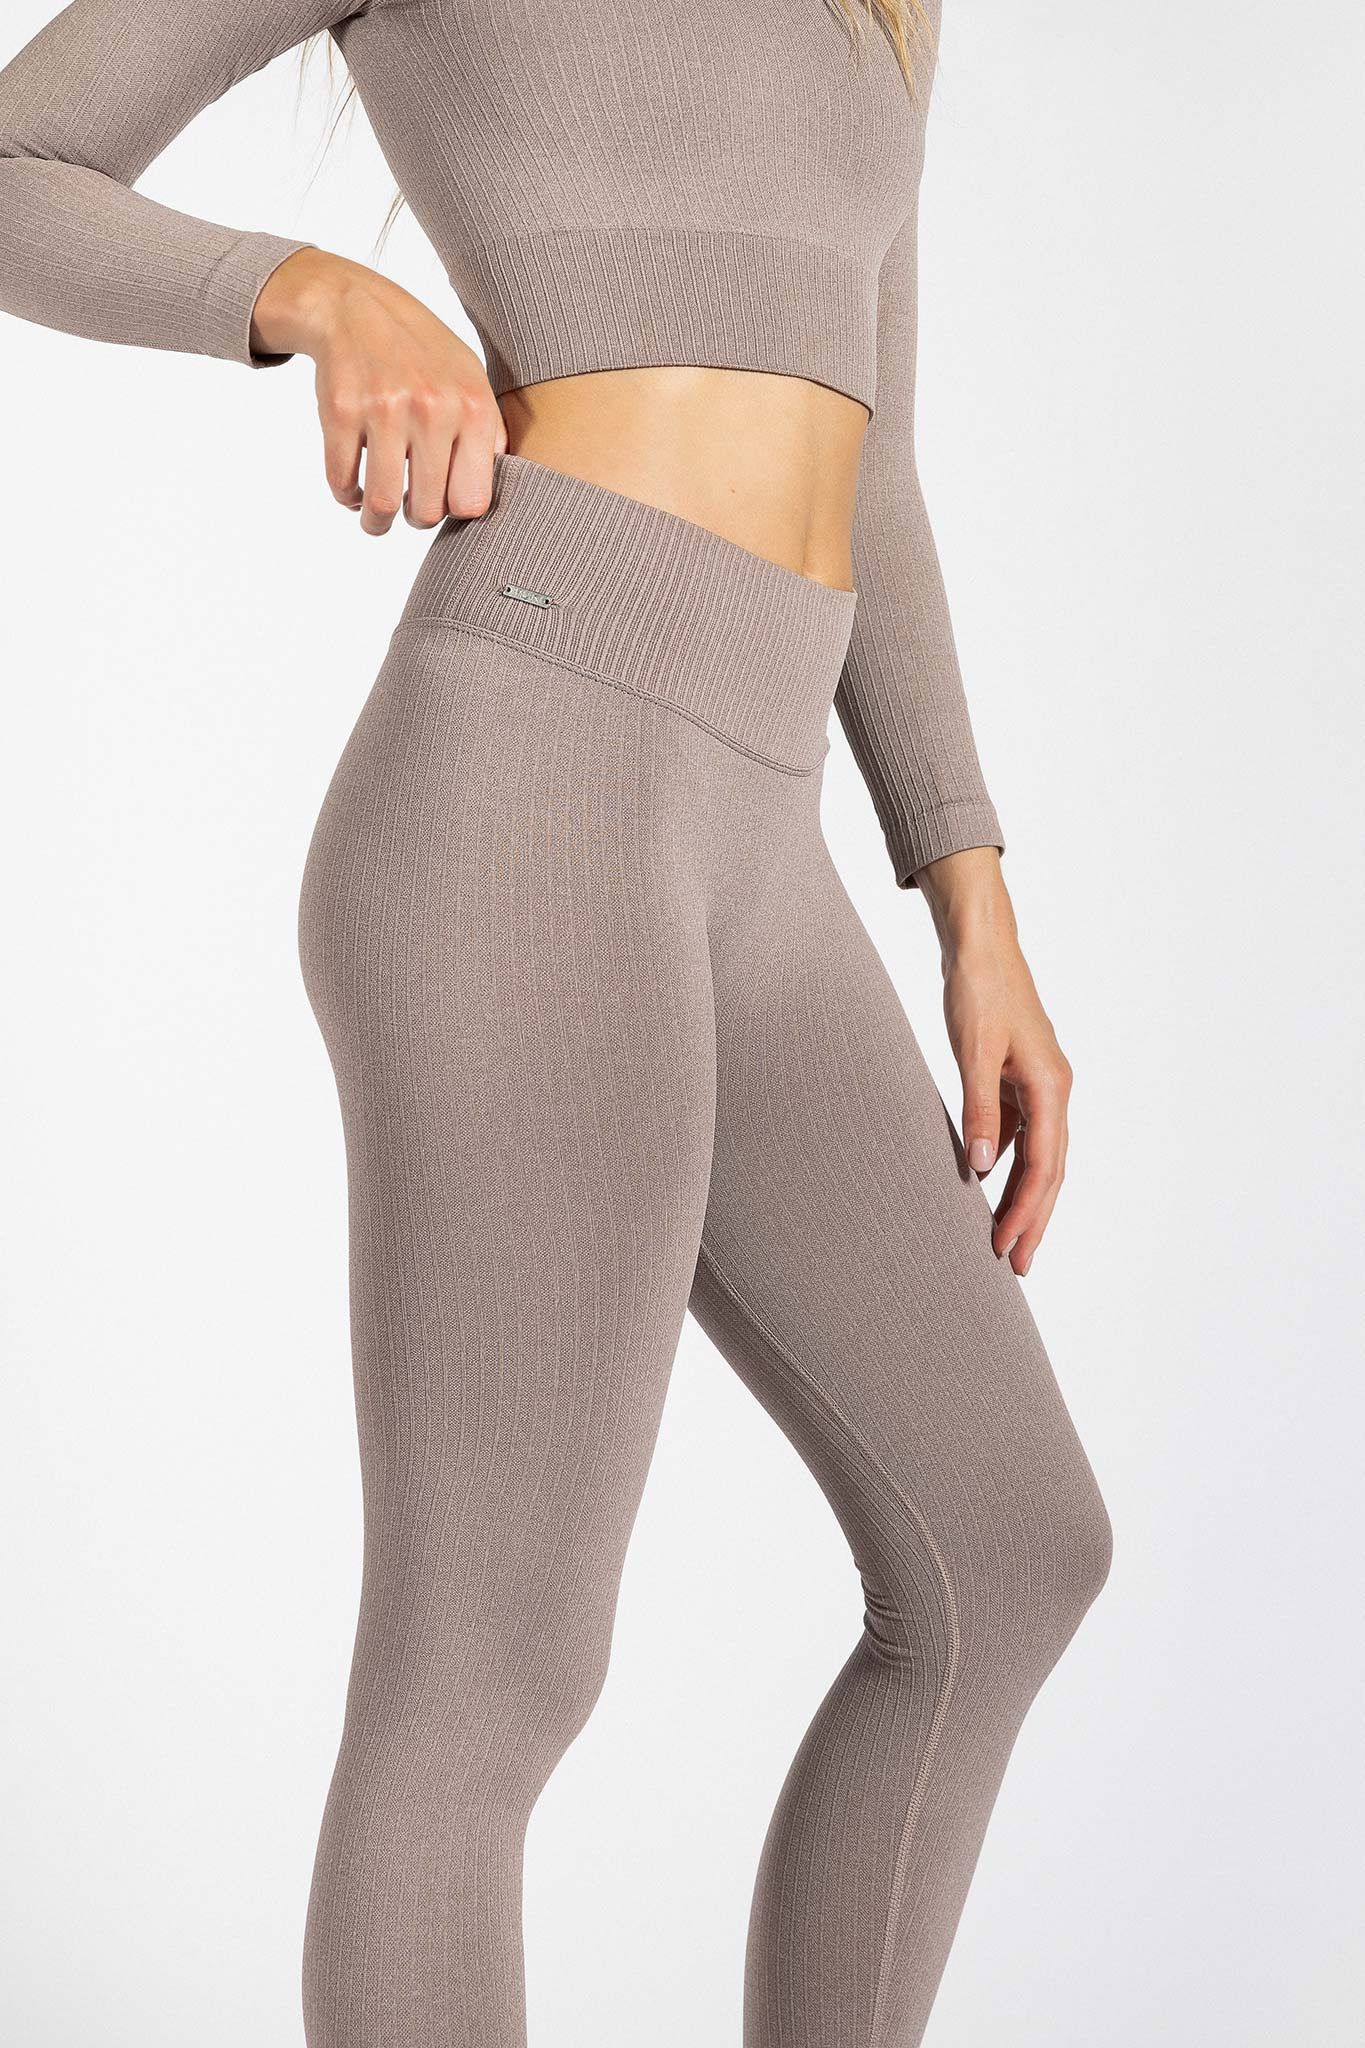 fit girl posing in seamless ribbed yoga pant in light brown colour